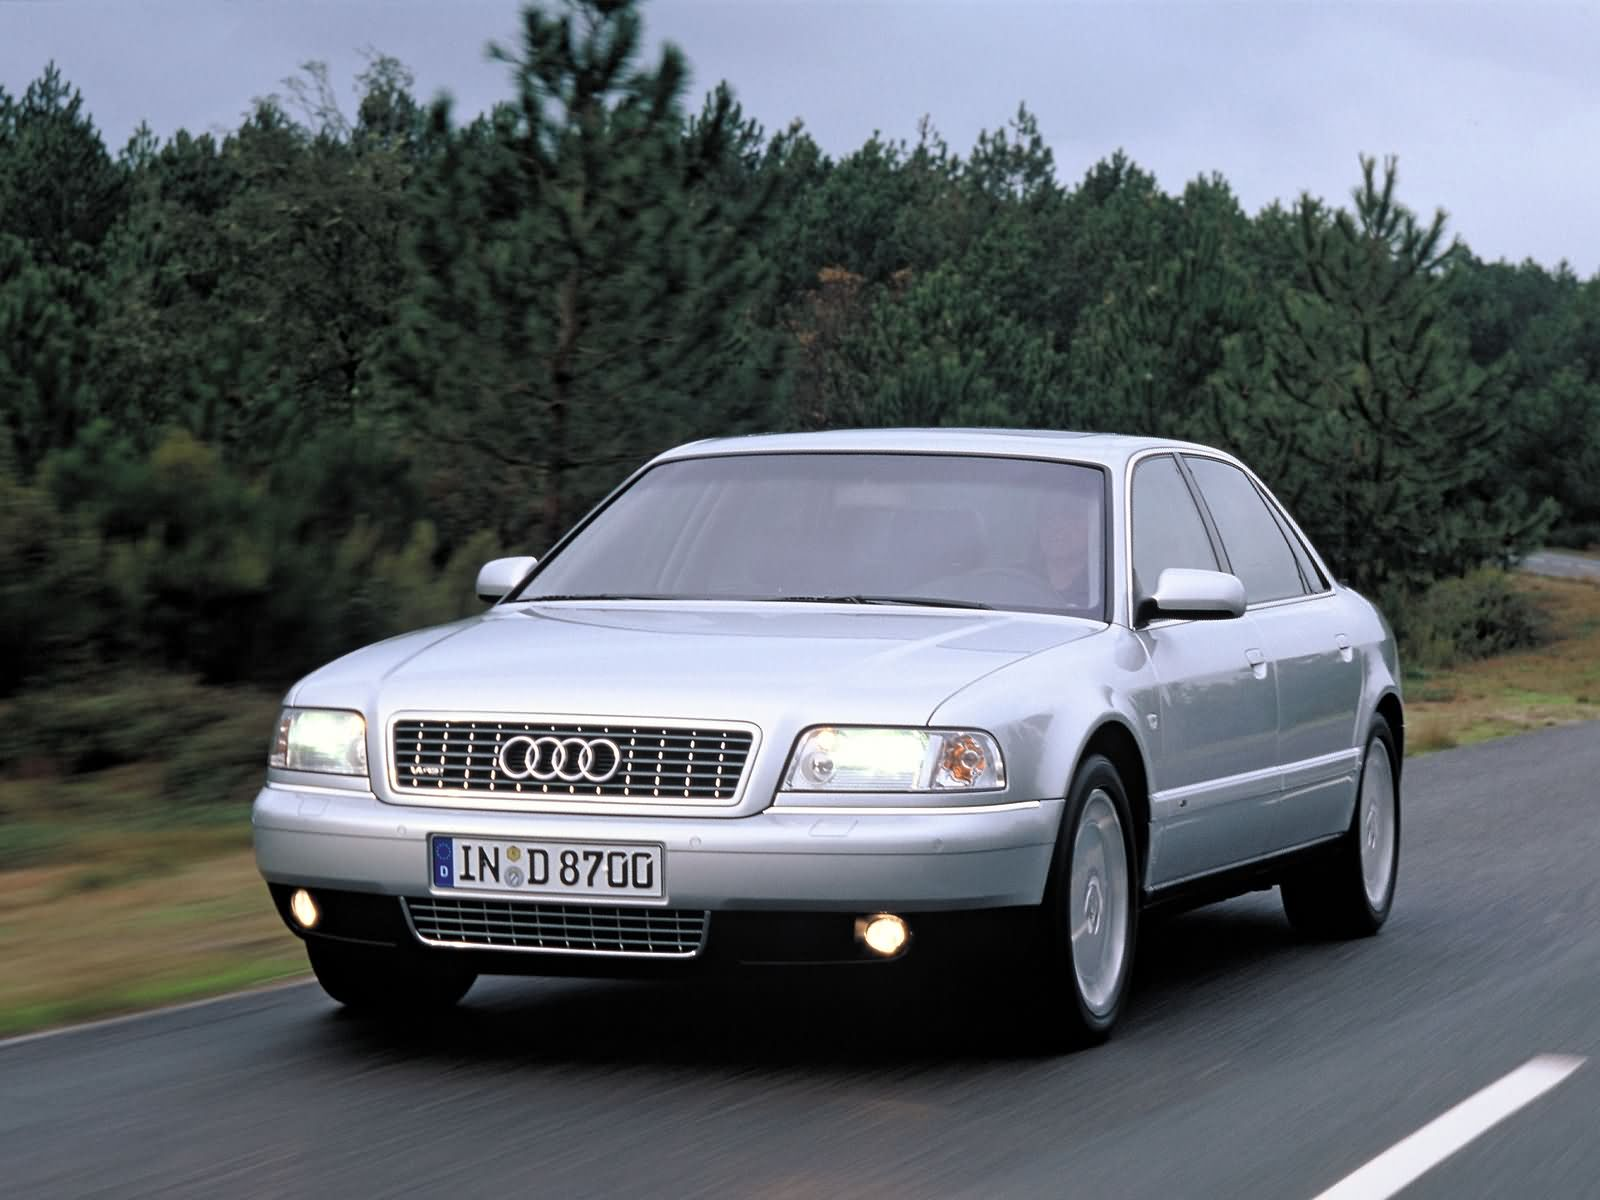 My Perfect Audi A DTuning Probably The Best Car Configurator - Audi car 1999 model